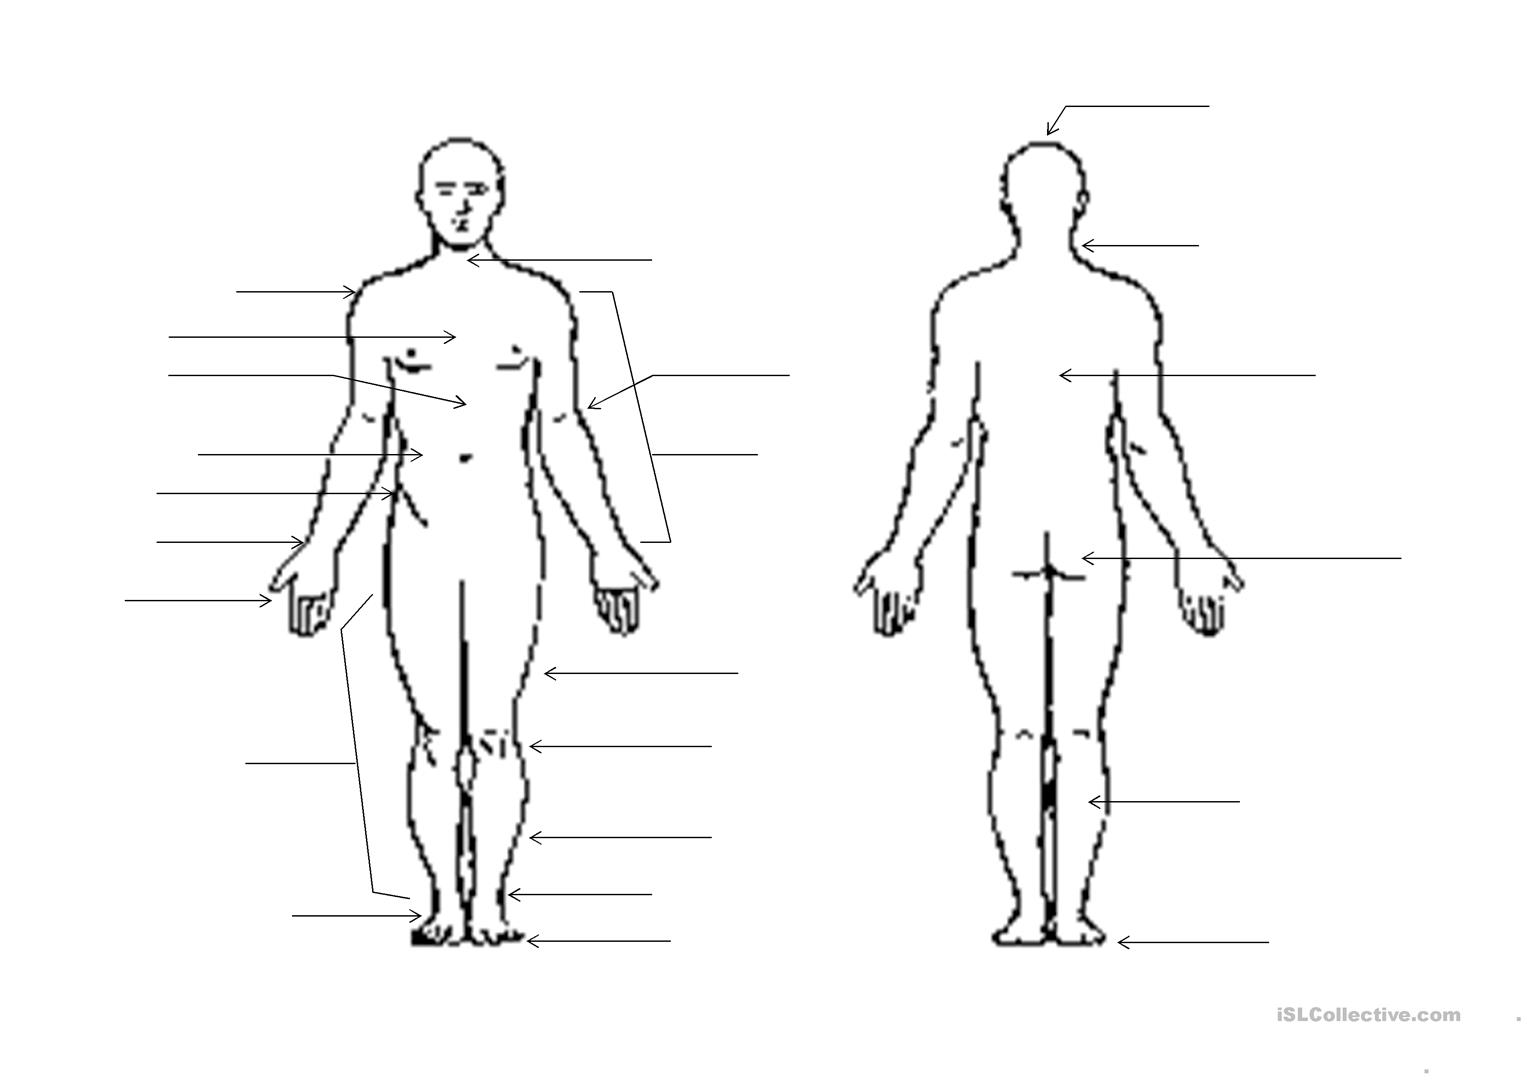 Human Body Outline worksheet - Free ESL printable worksheets made by ...